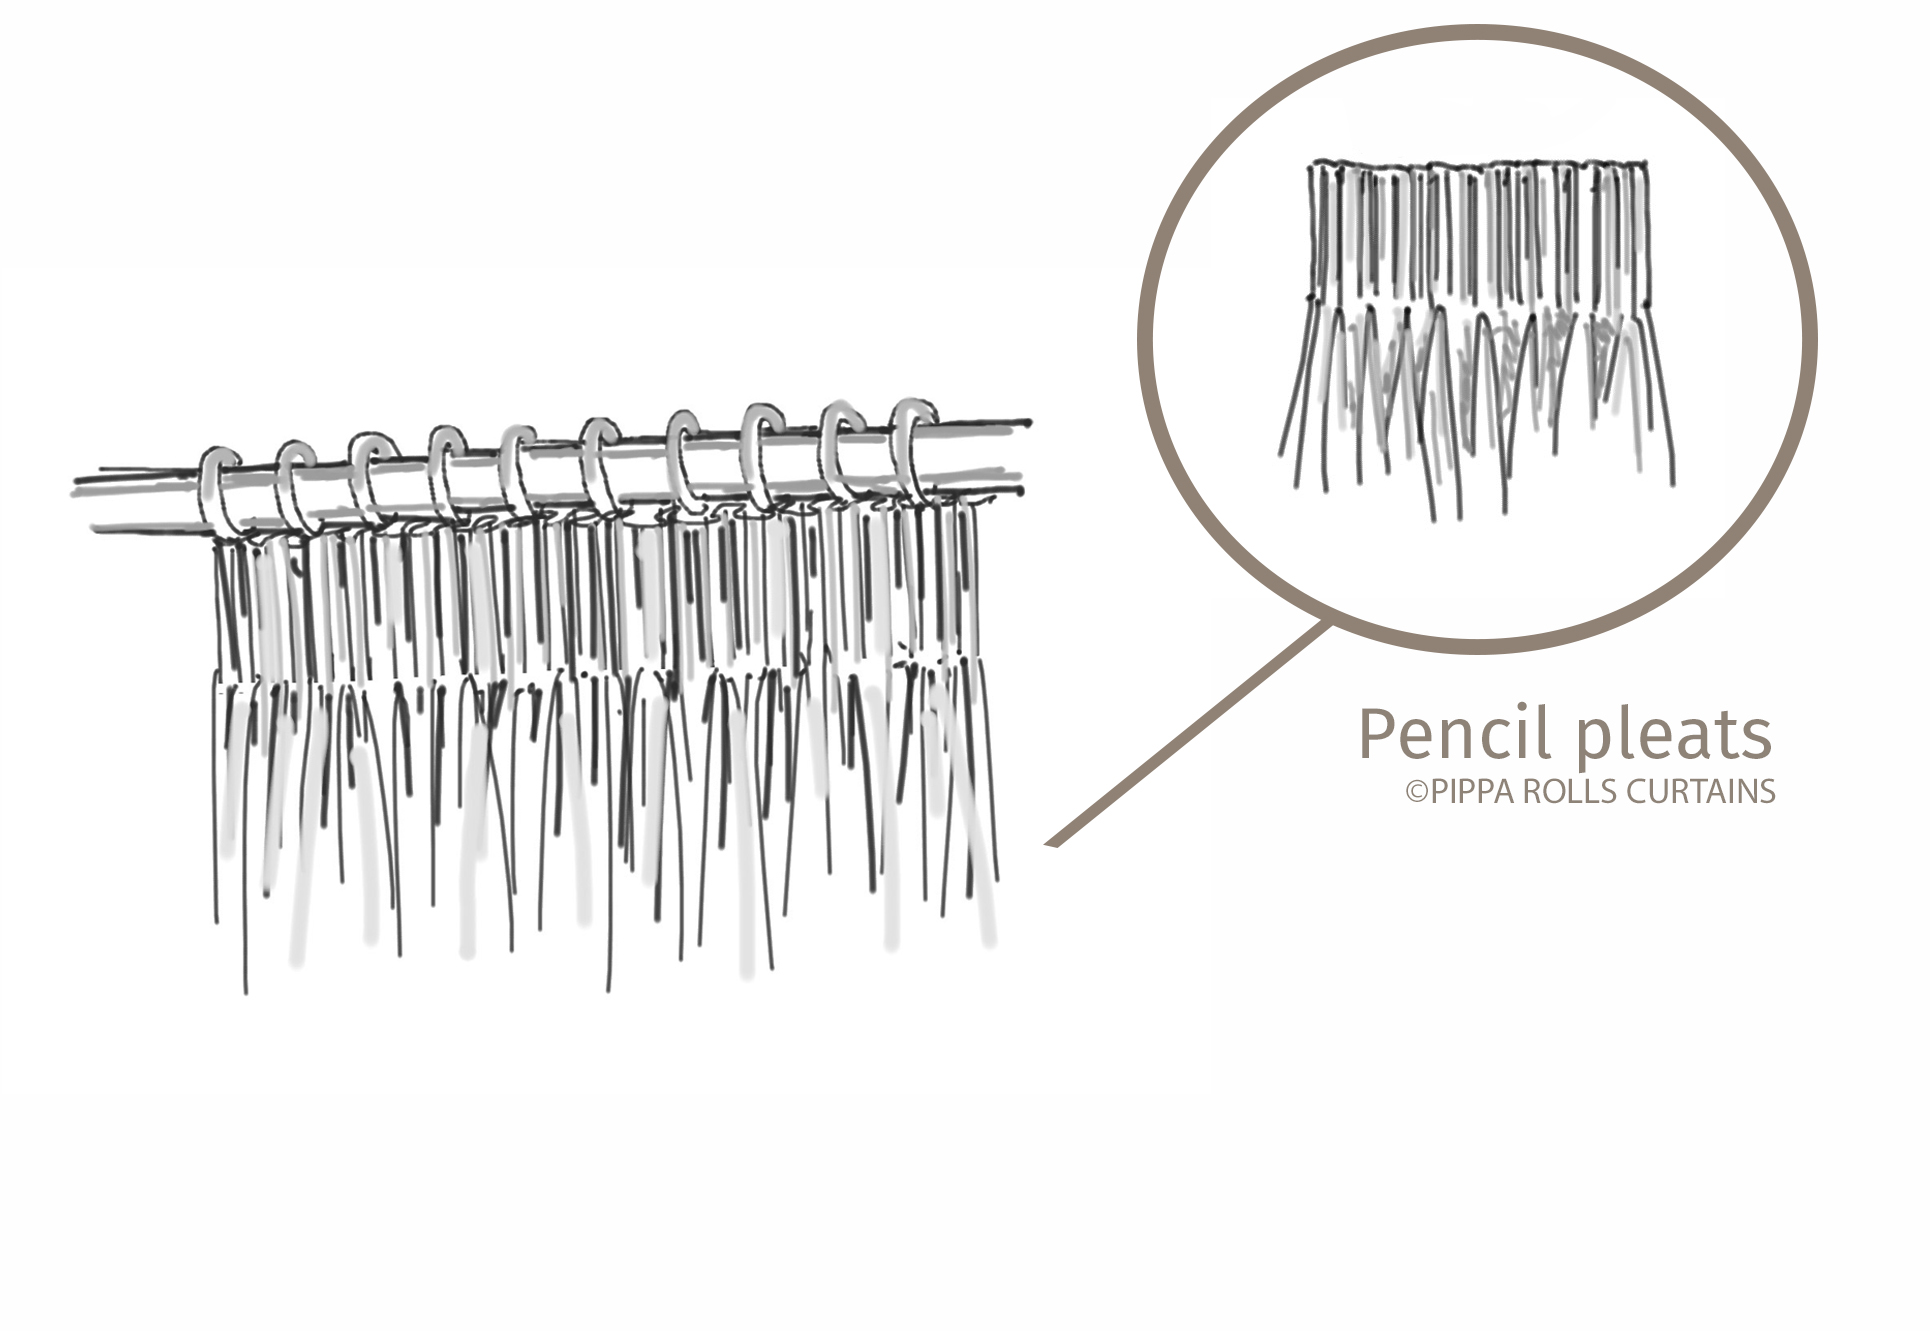 Pencil pleats jpeg.jpg